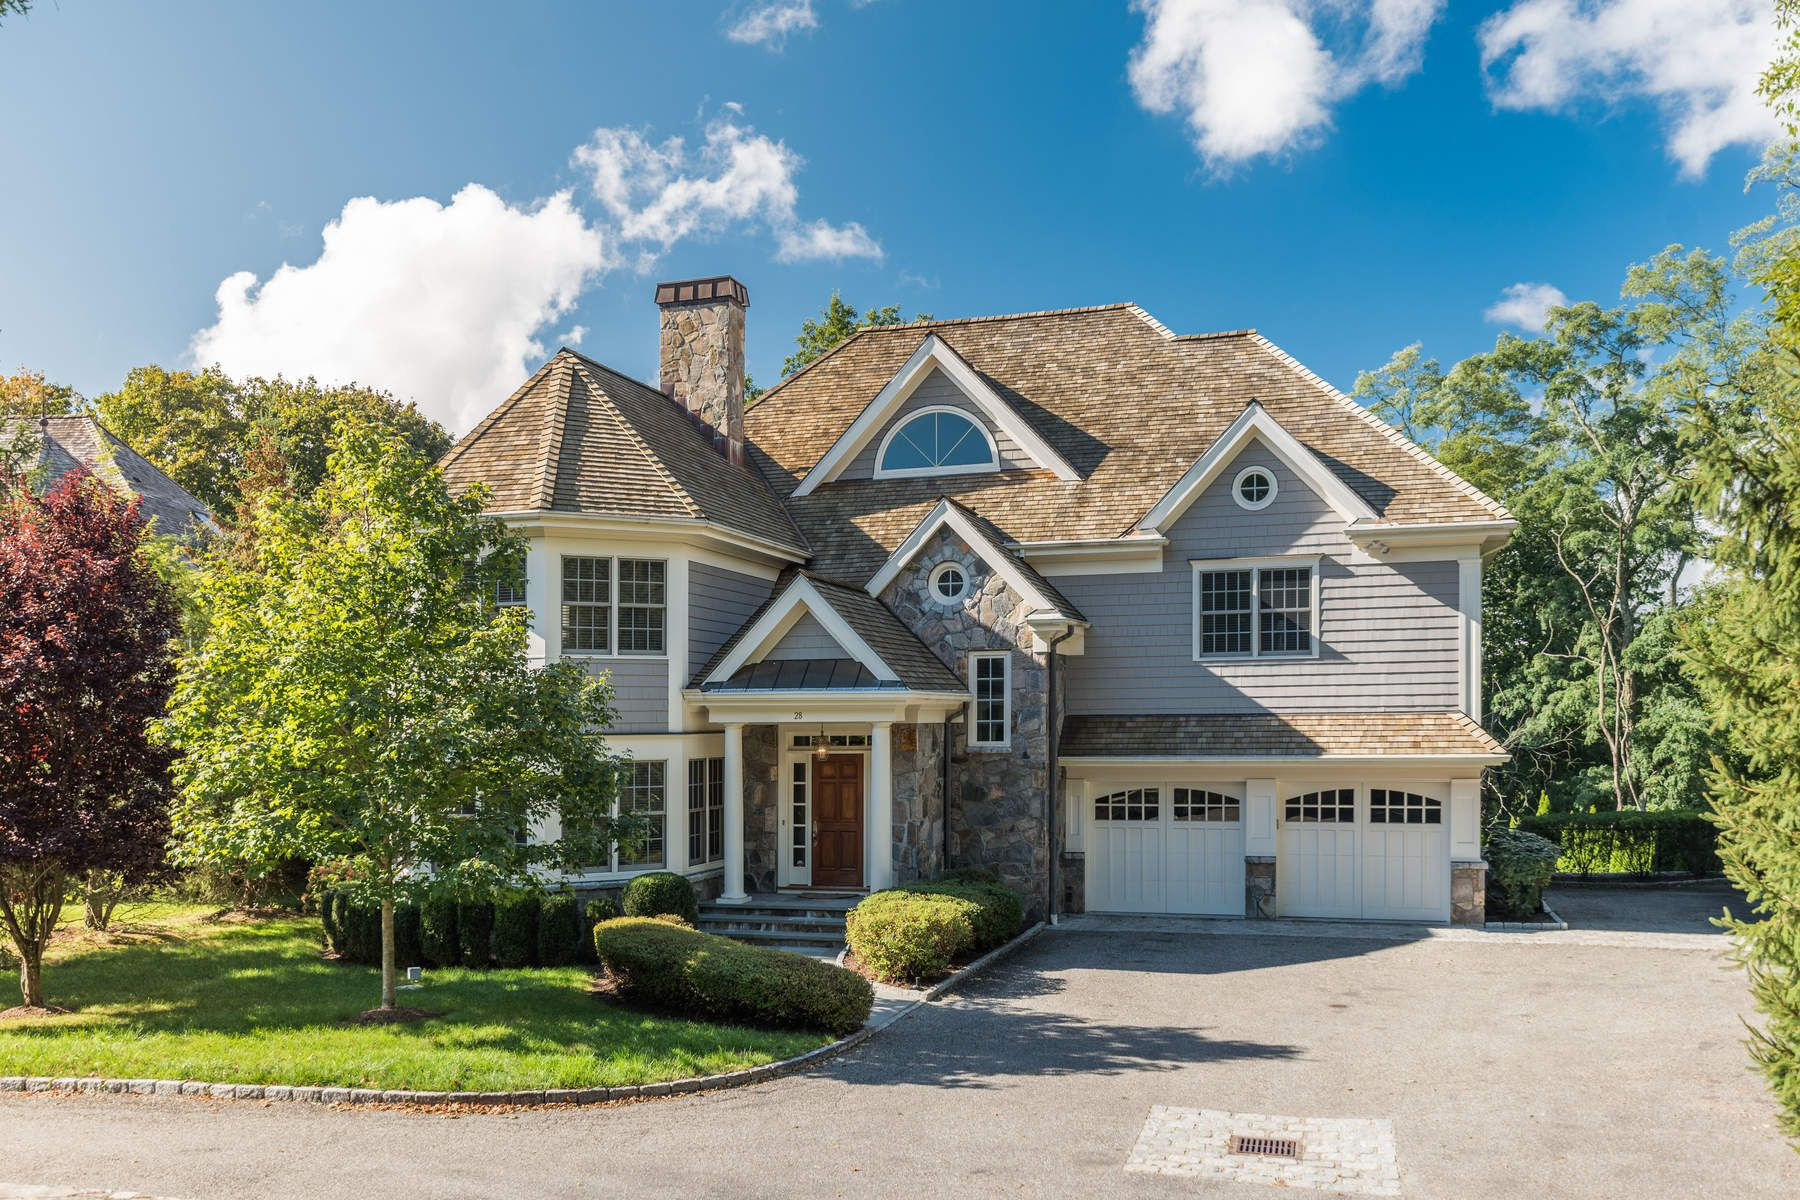 Single Family Home for Sale at Fabulous Space, Location and Amenity 28 Oak Street Greenwich, Connecticut 06831 United States